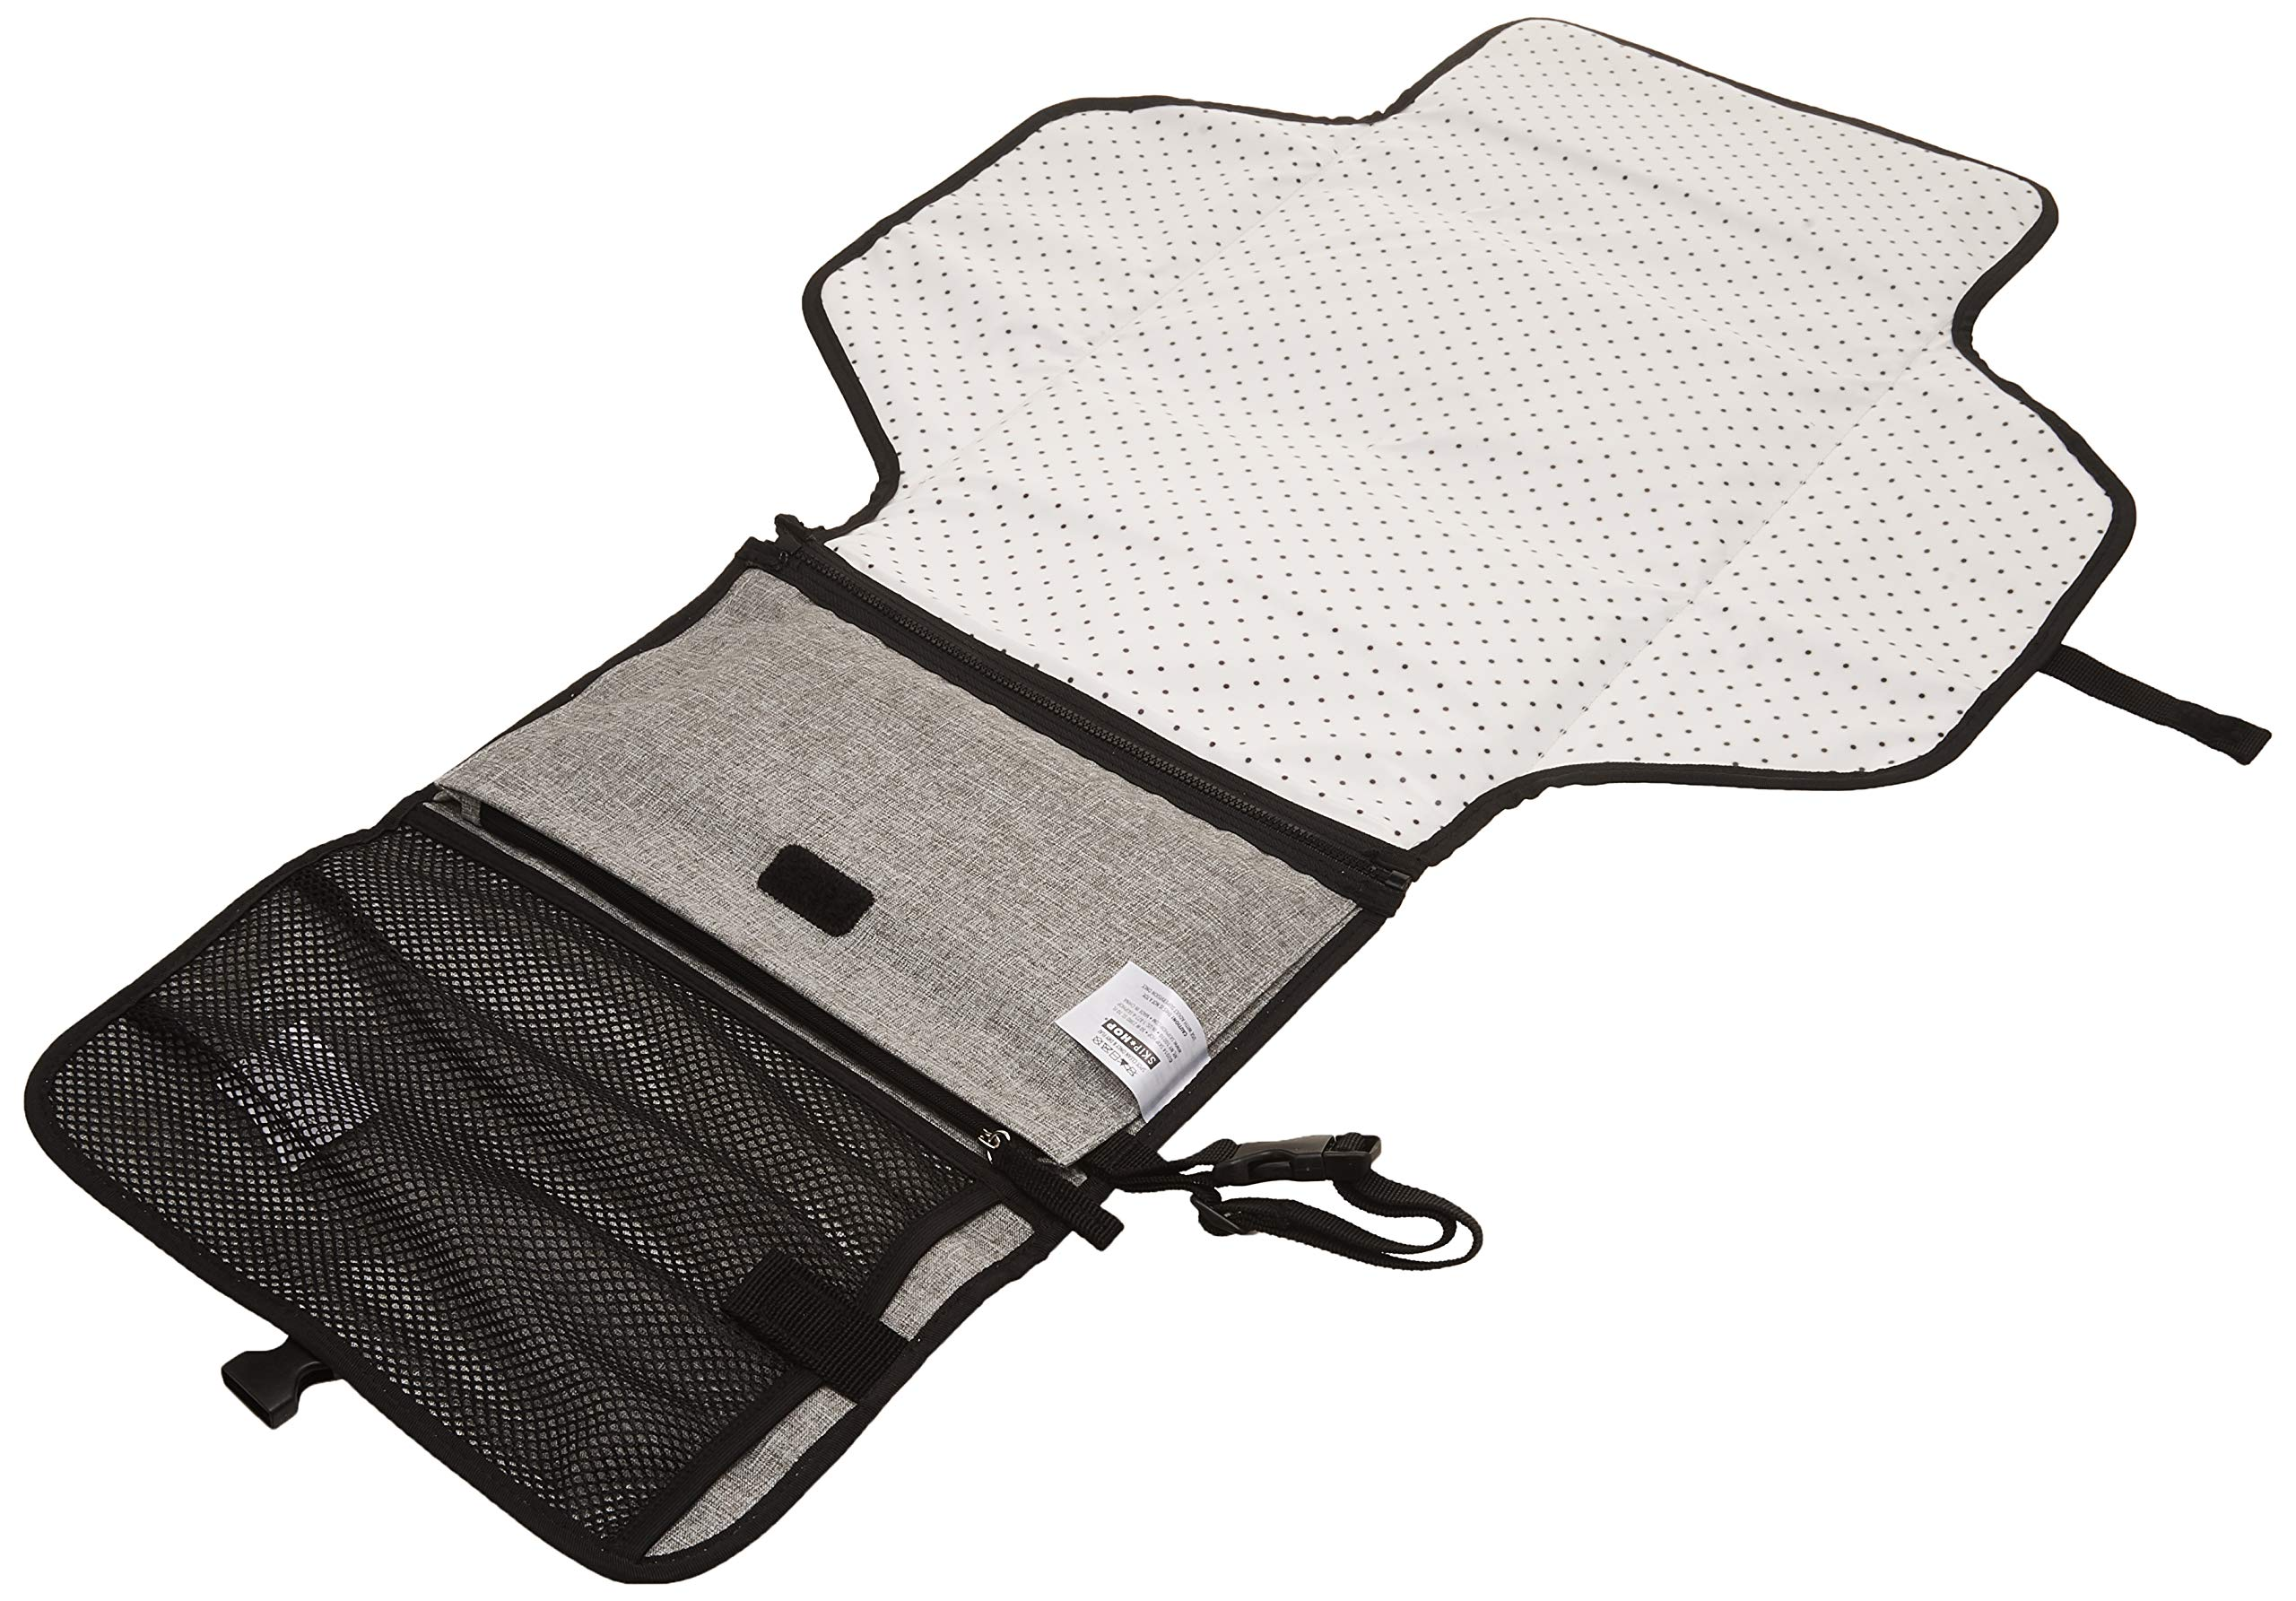 Skip Hop Pronto Signature Portable Changing Mat, Cushioned Diaper Changing Pad with Built-in Pillow, Grey Melange by Skip Hop (Image #1)